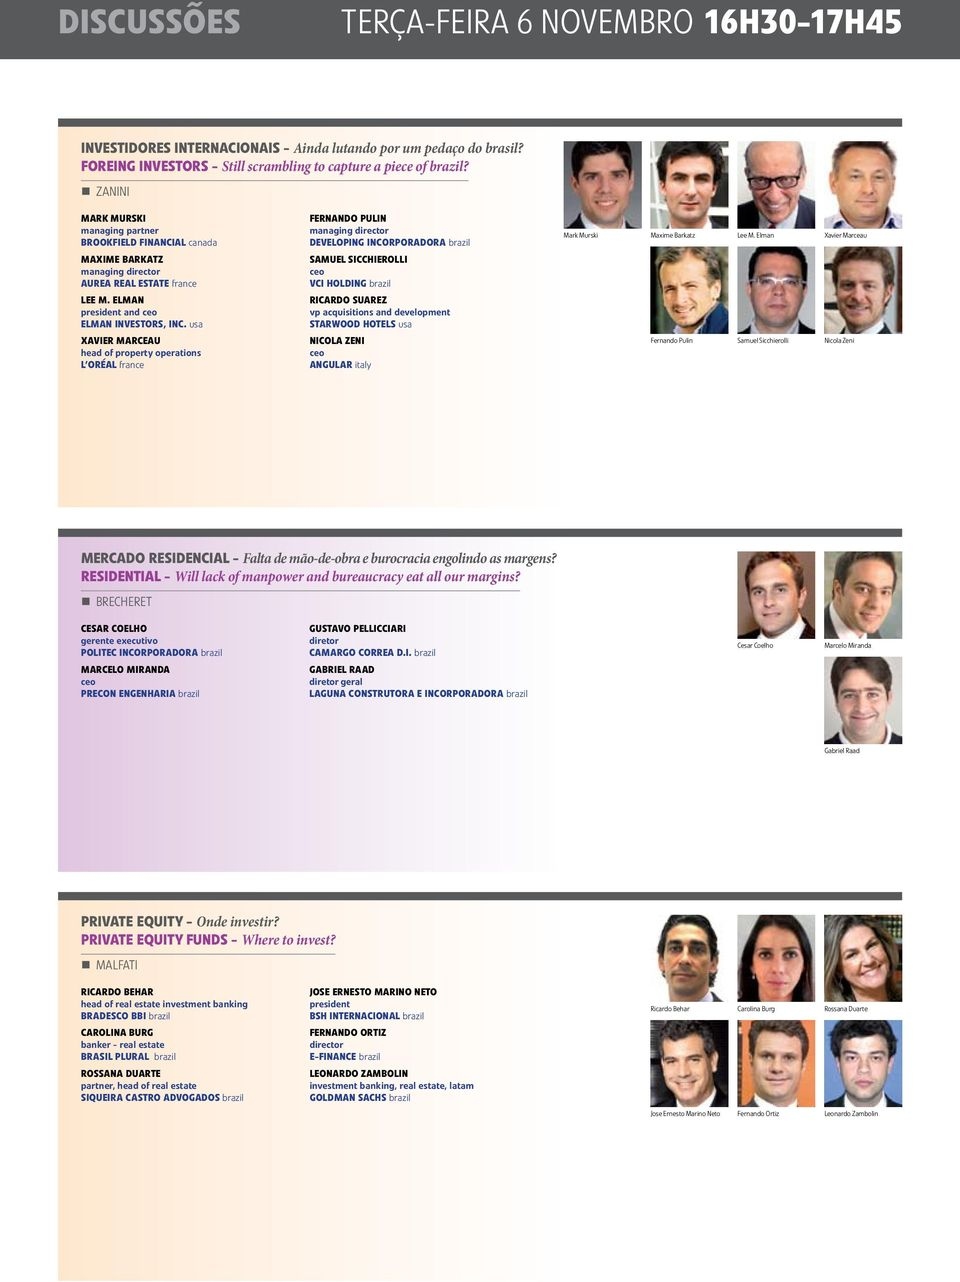 usa Xavier Marceau head of property operations L oréal france Fernando Pulin managing director Developing Incorporadora brazil Samuel Sicchierolli VCi Holding brazil Ricardo Suarez vp acquisitions